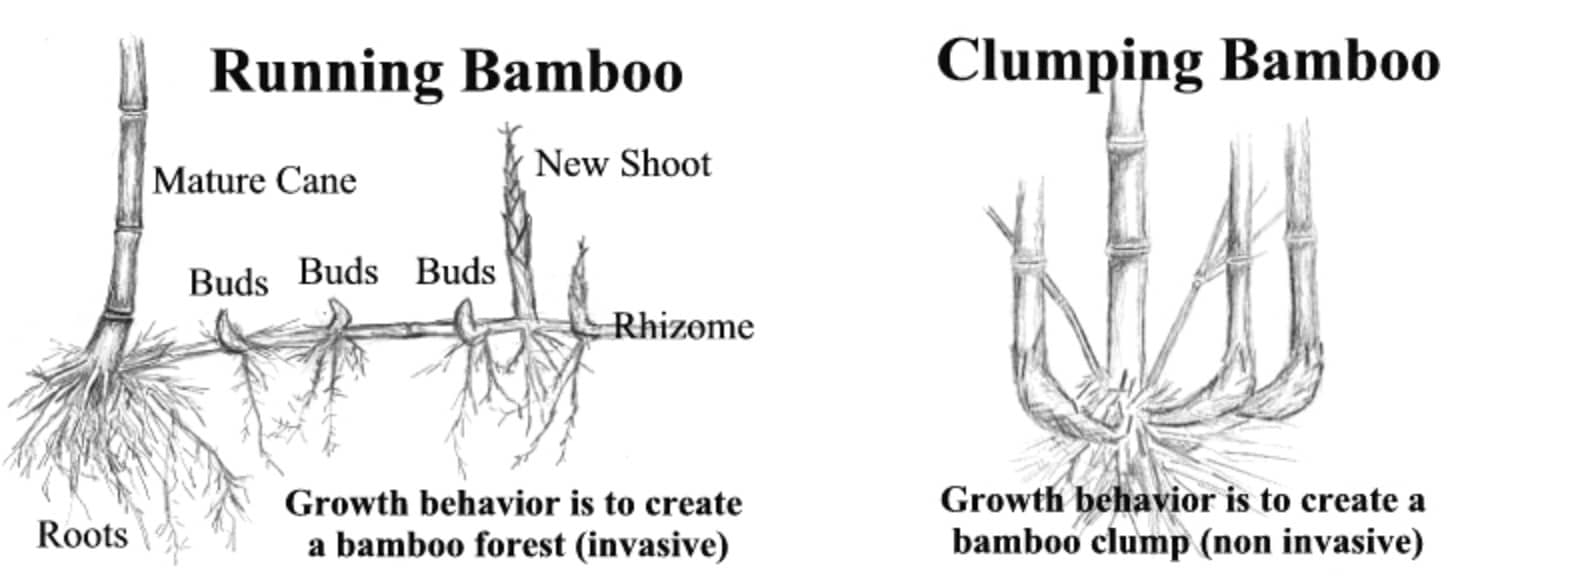 Running bamboo and clumping bamboo are the two main kinds of bamboo